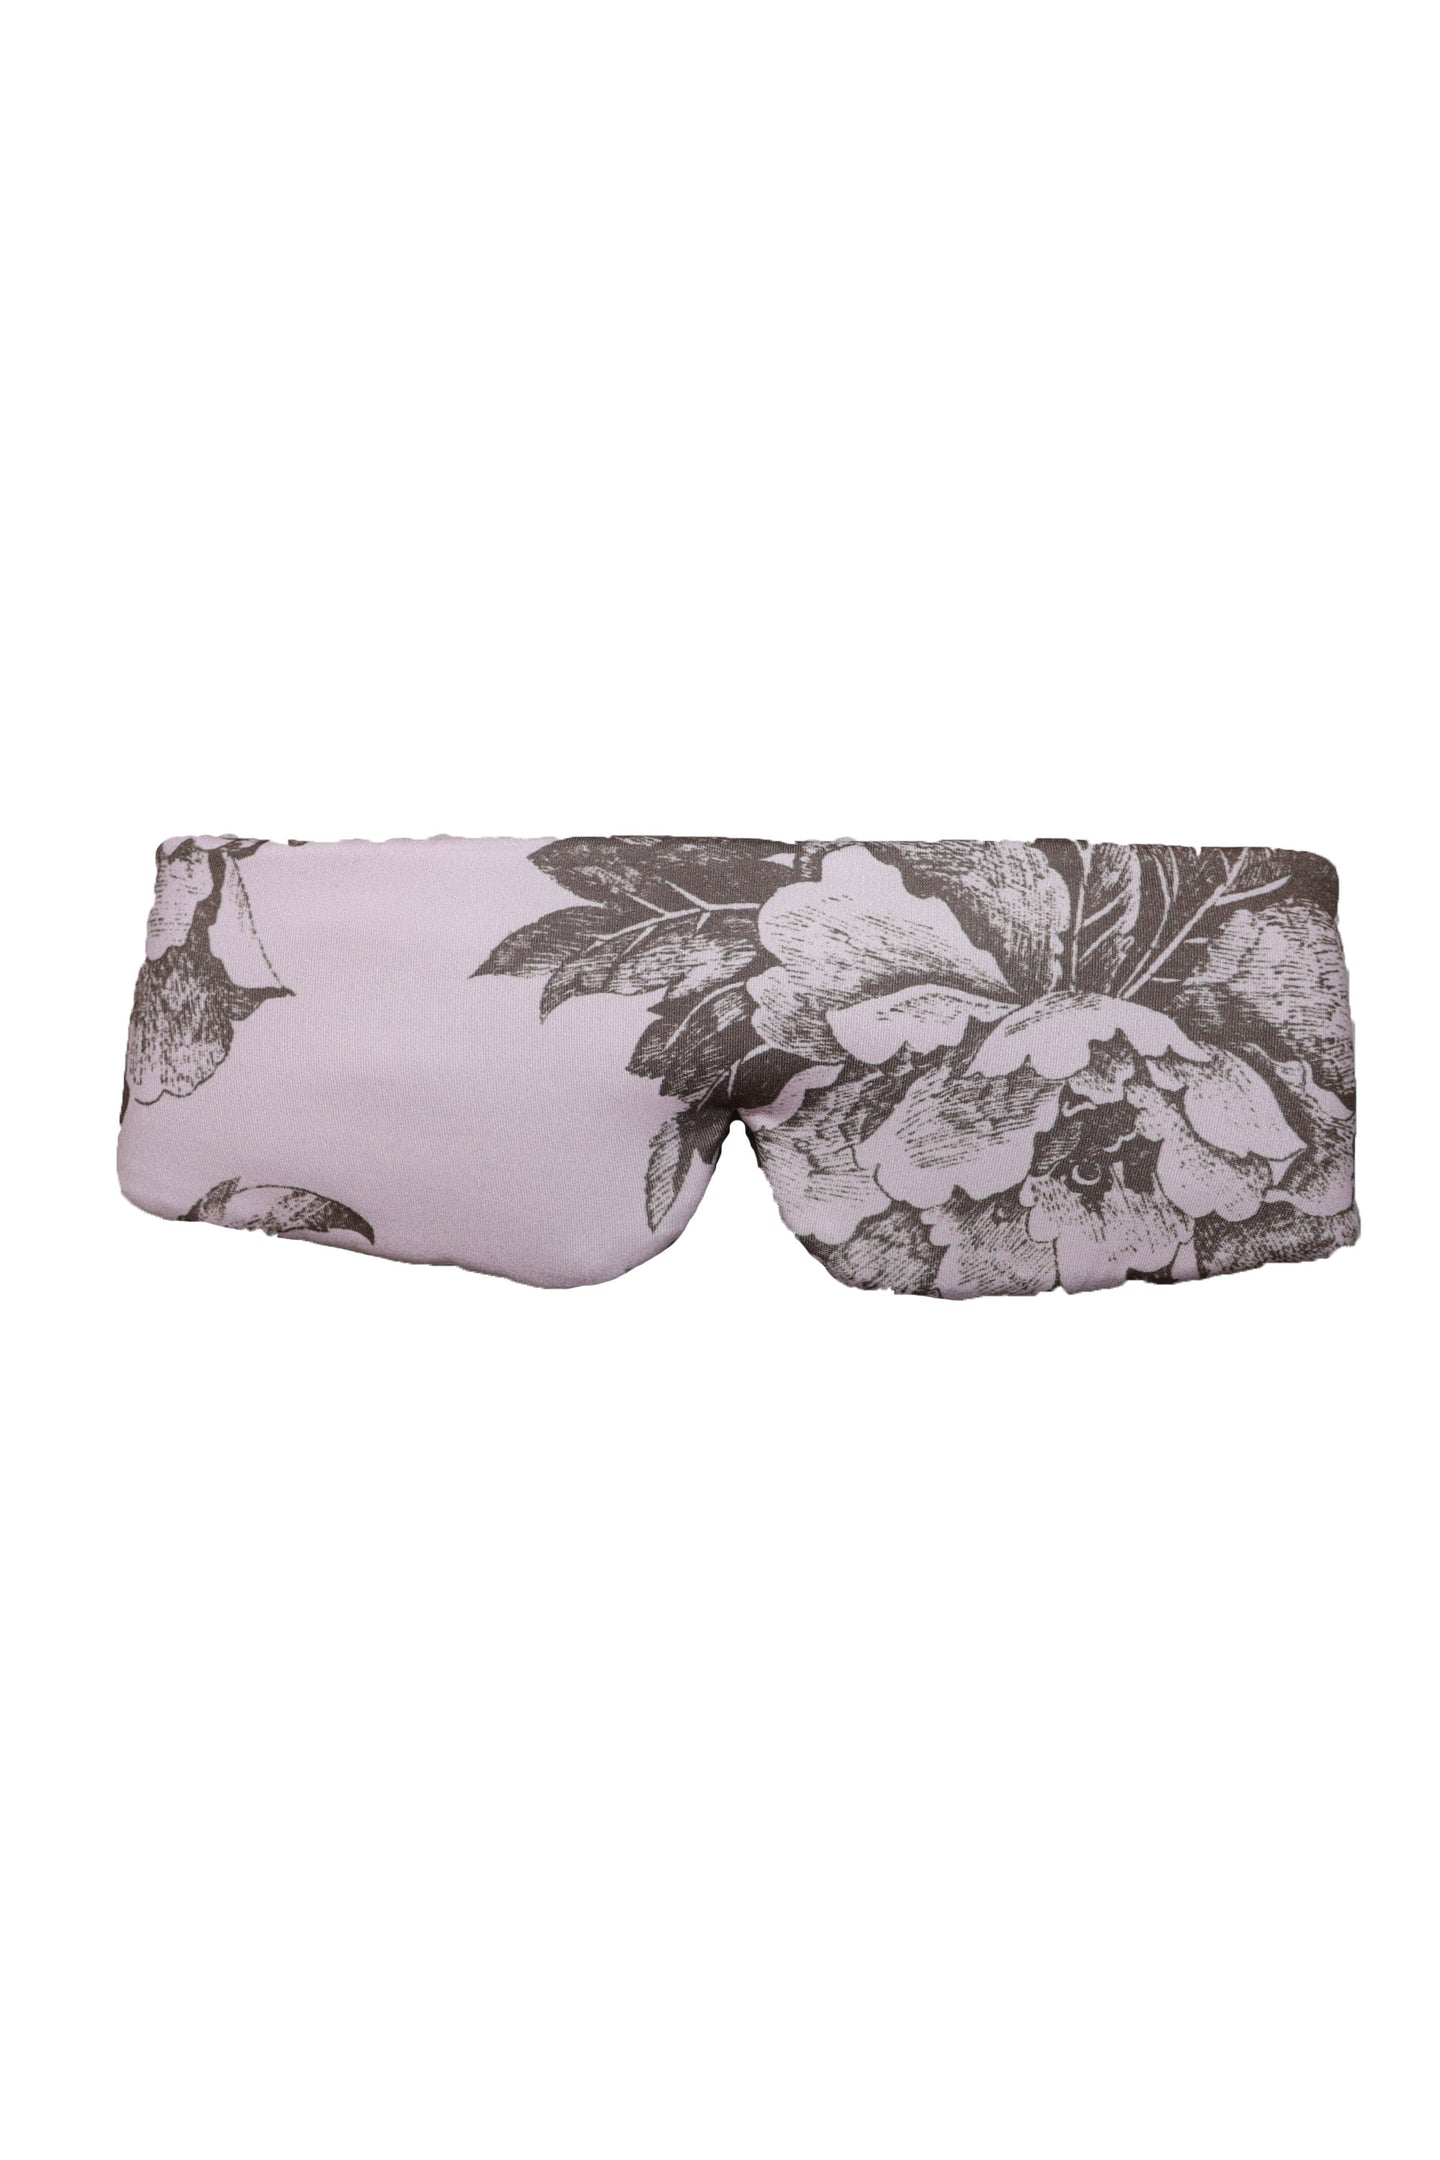 MG EYE MASK | PINK BOUQUET